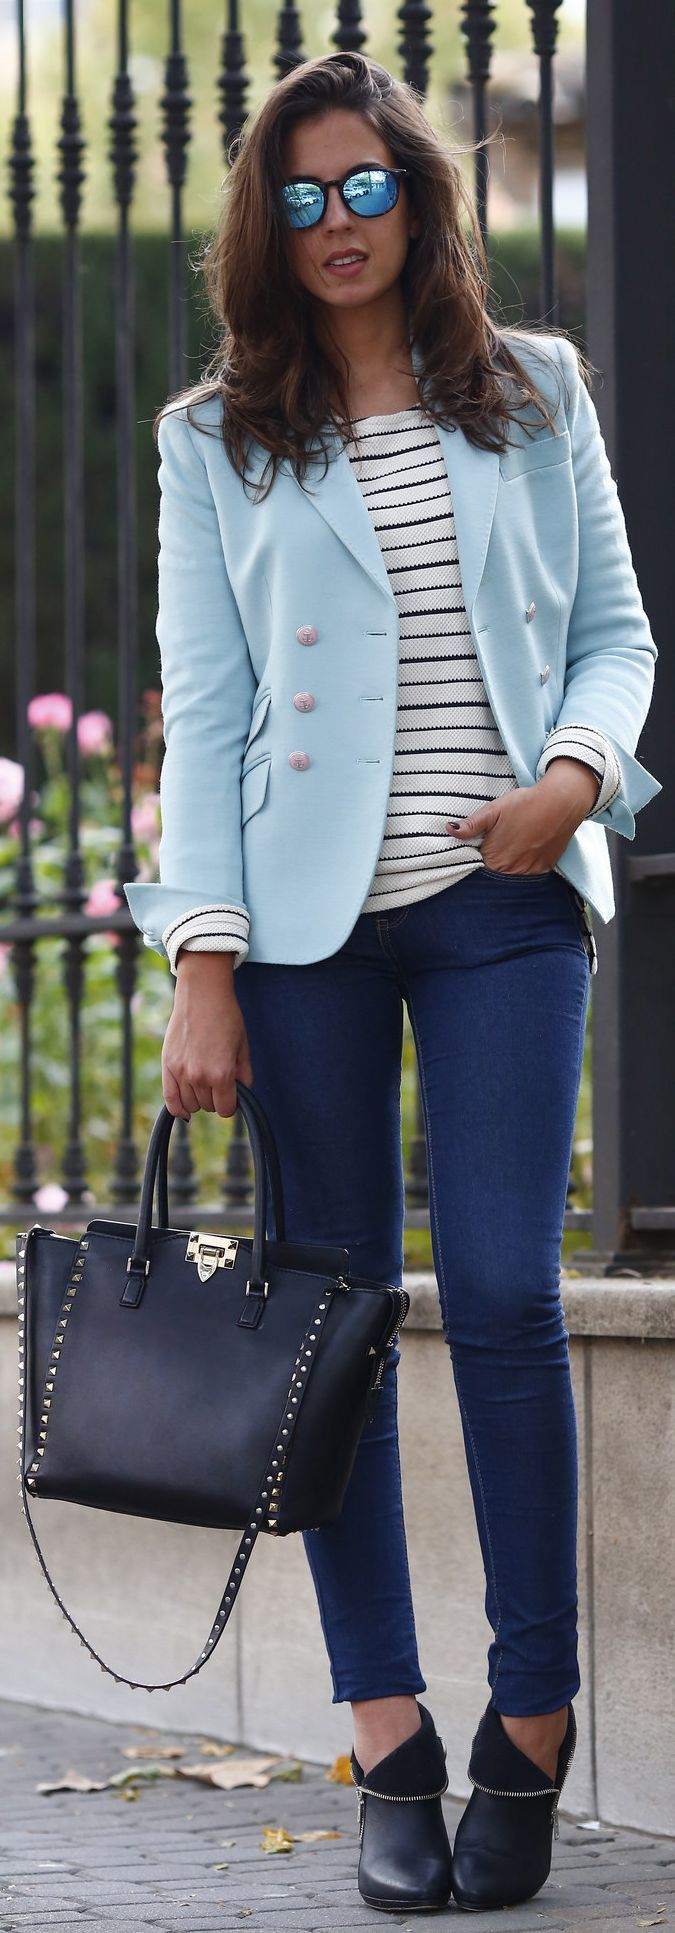 Light Blue Taylor Fitted Blazer. Take away the sun glasses, change the shoes and get rid of that bag